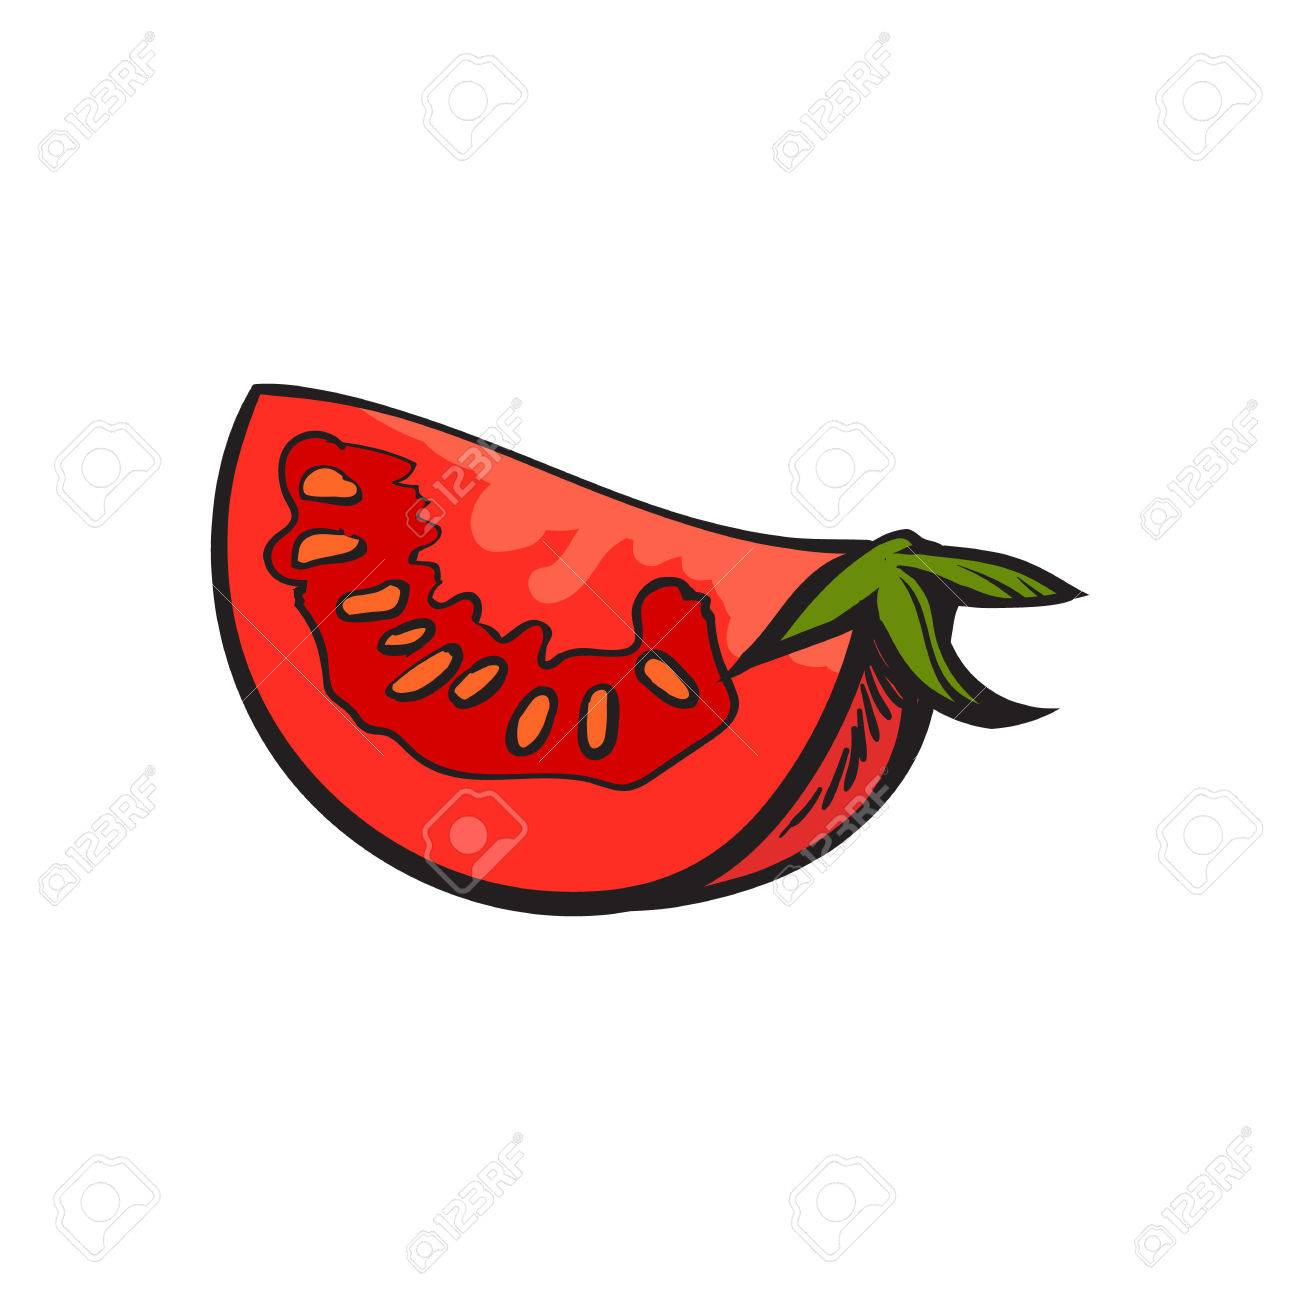 1300x1300 Sketch Style Drawing Of Ripe Red Tomato Slice, Vector Illustration